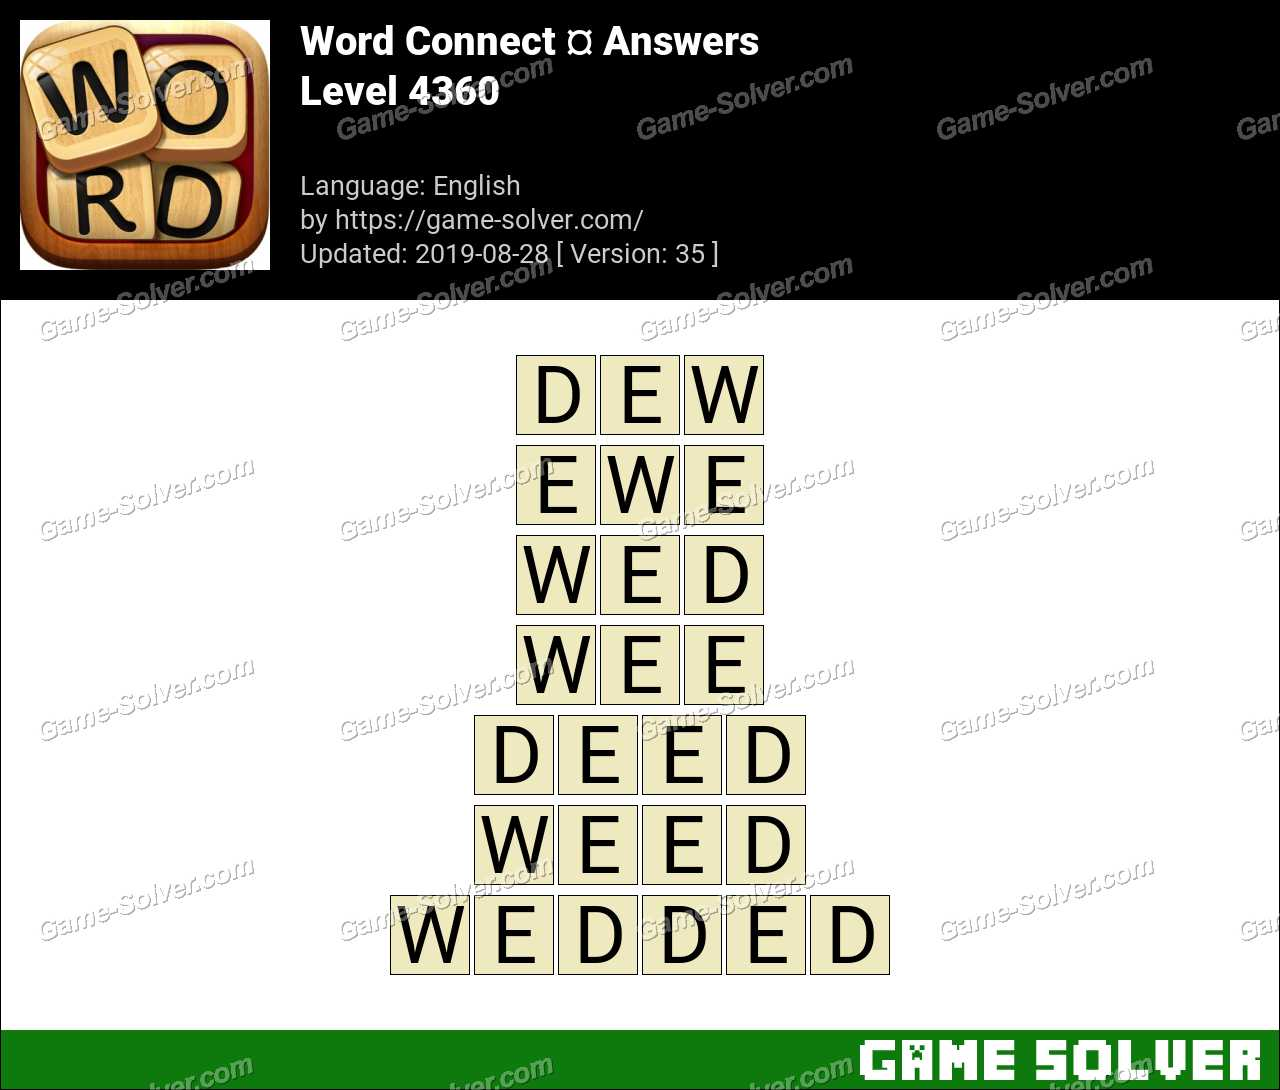 Word Connect Level 4360 Answers